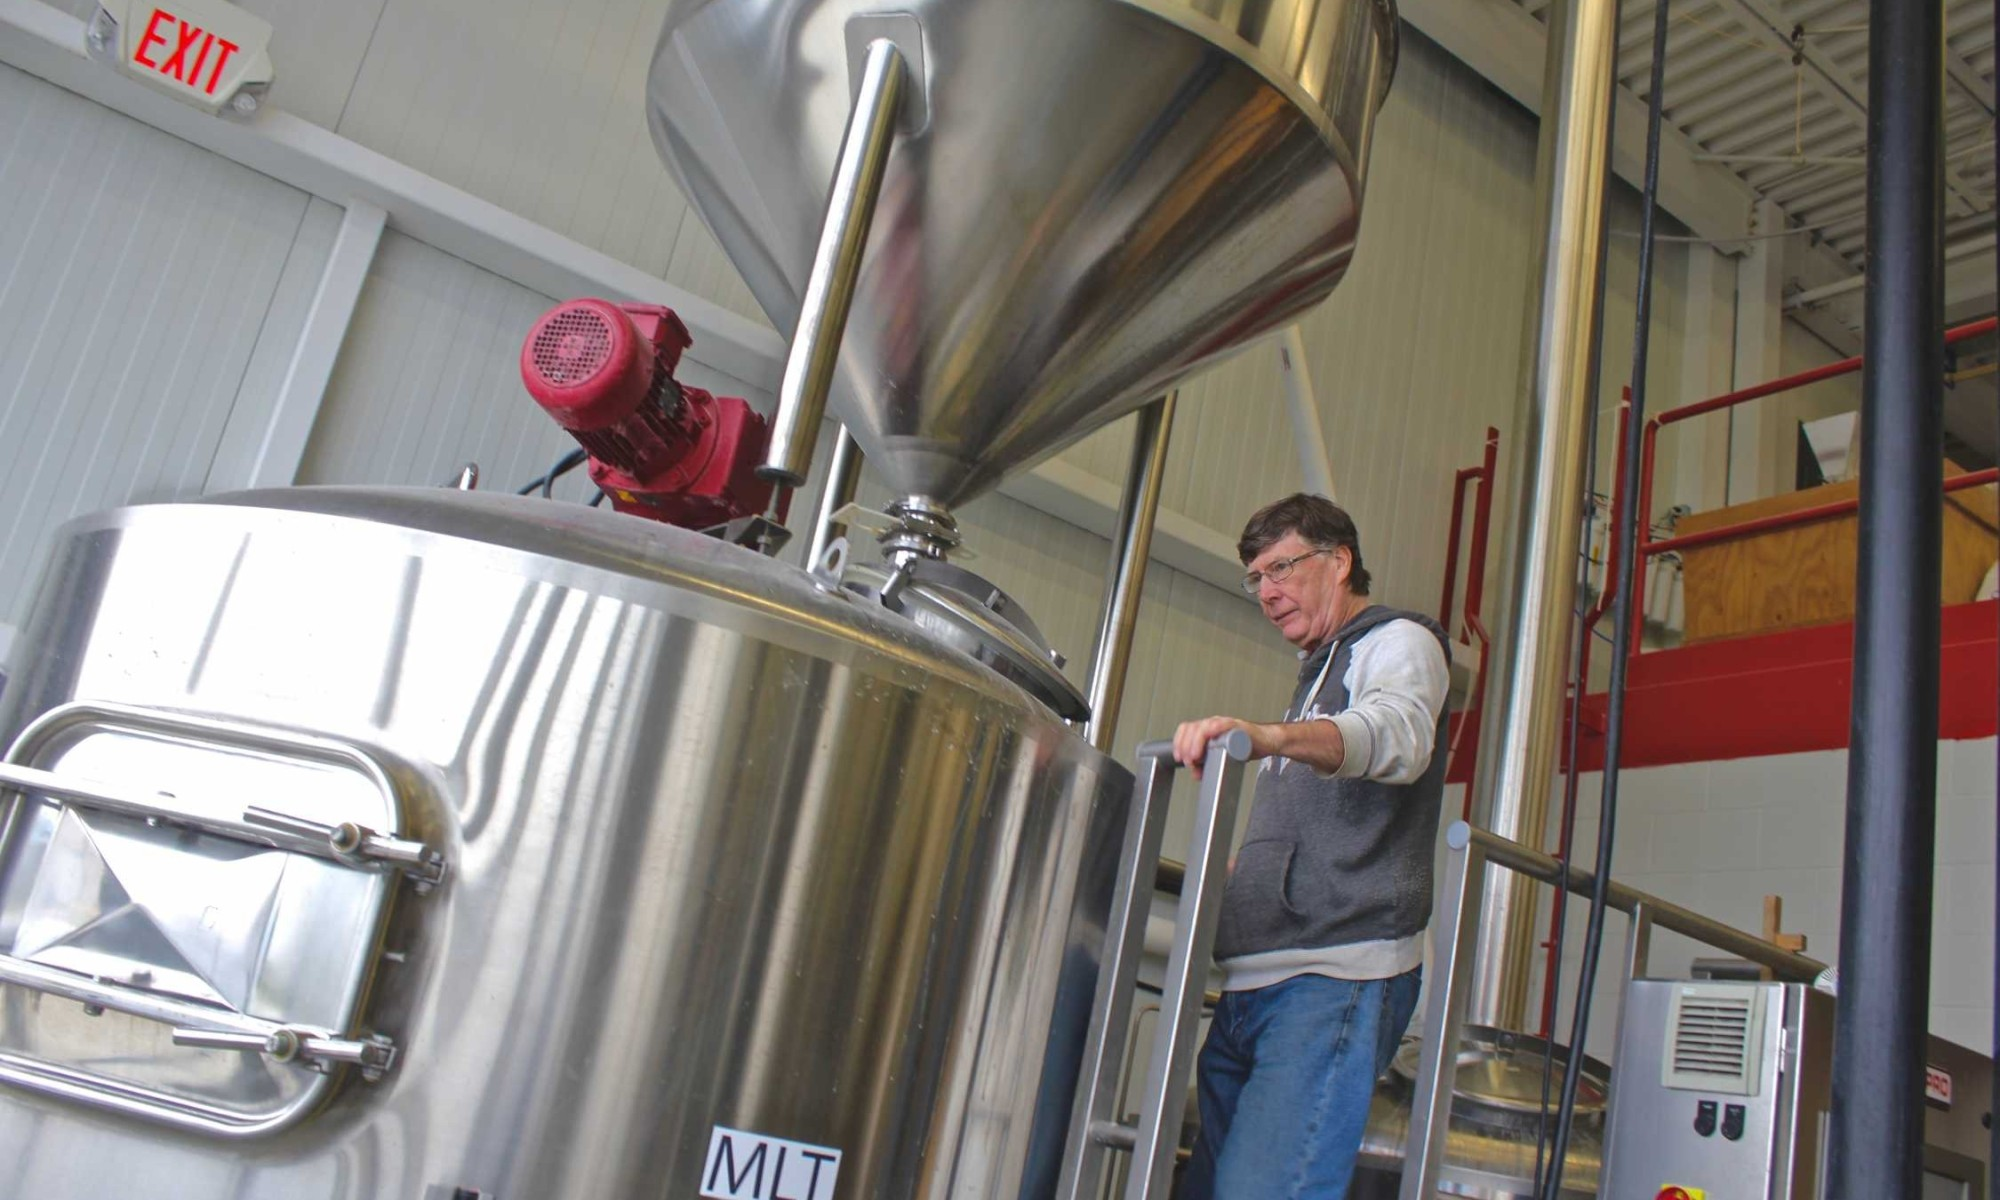 Charles with the fermenter